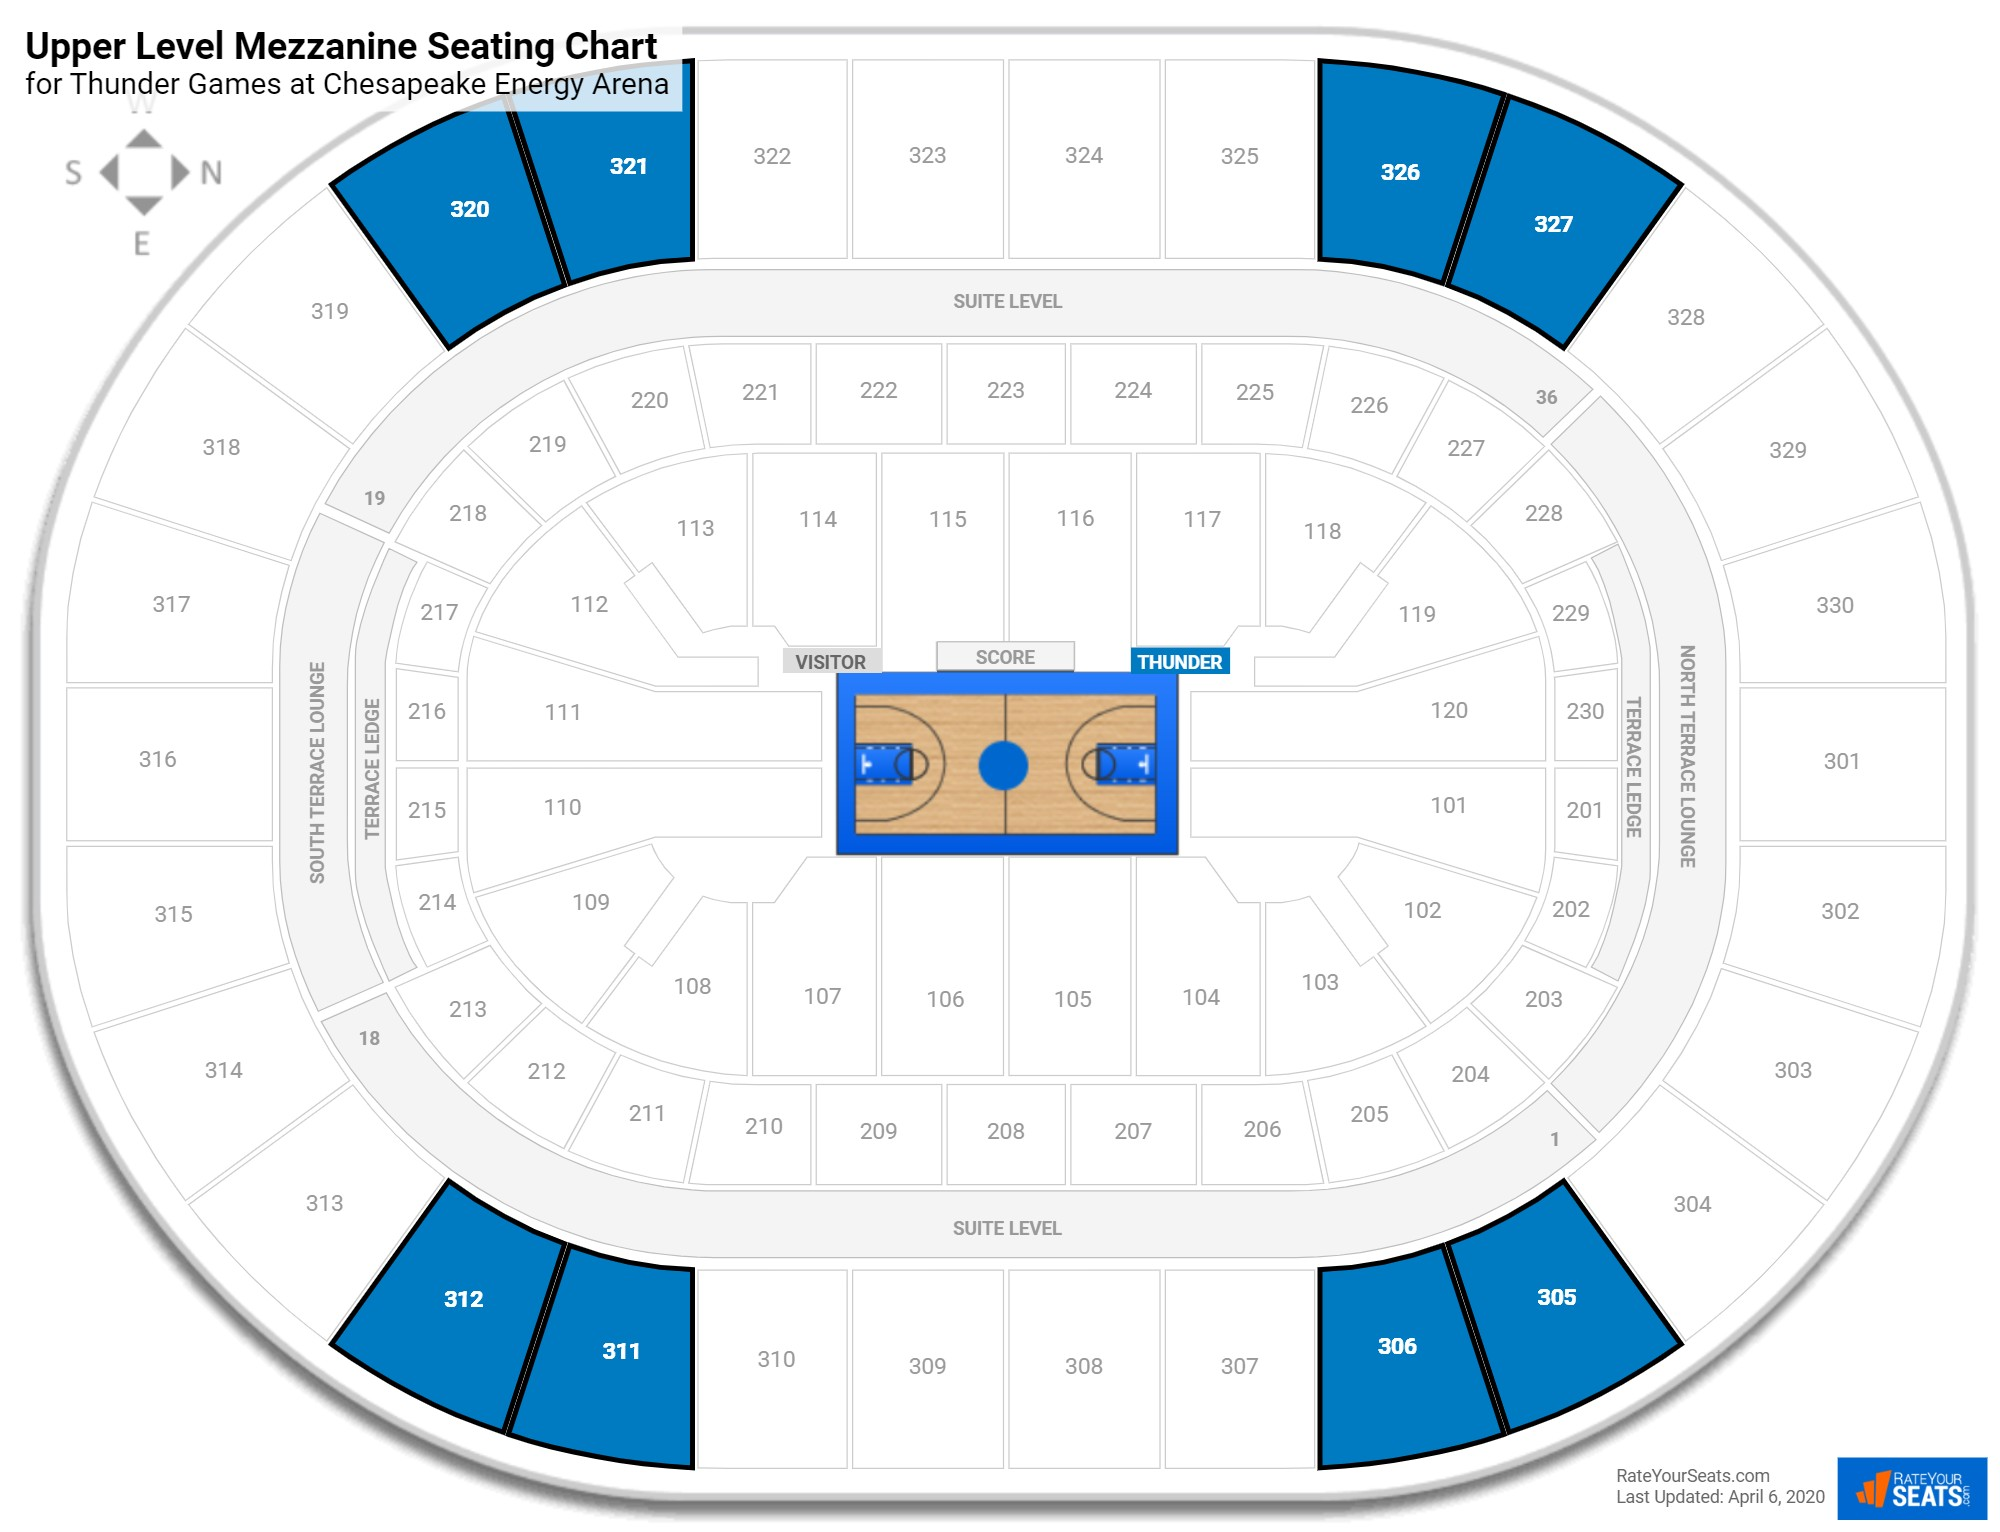 Chesapeake Energy Arena Upper Level Mezzanine seating chart